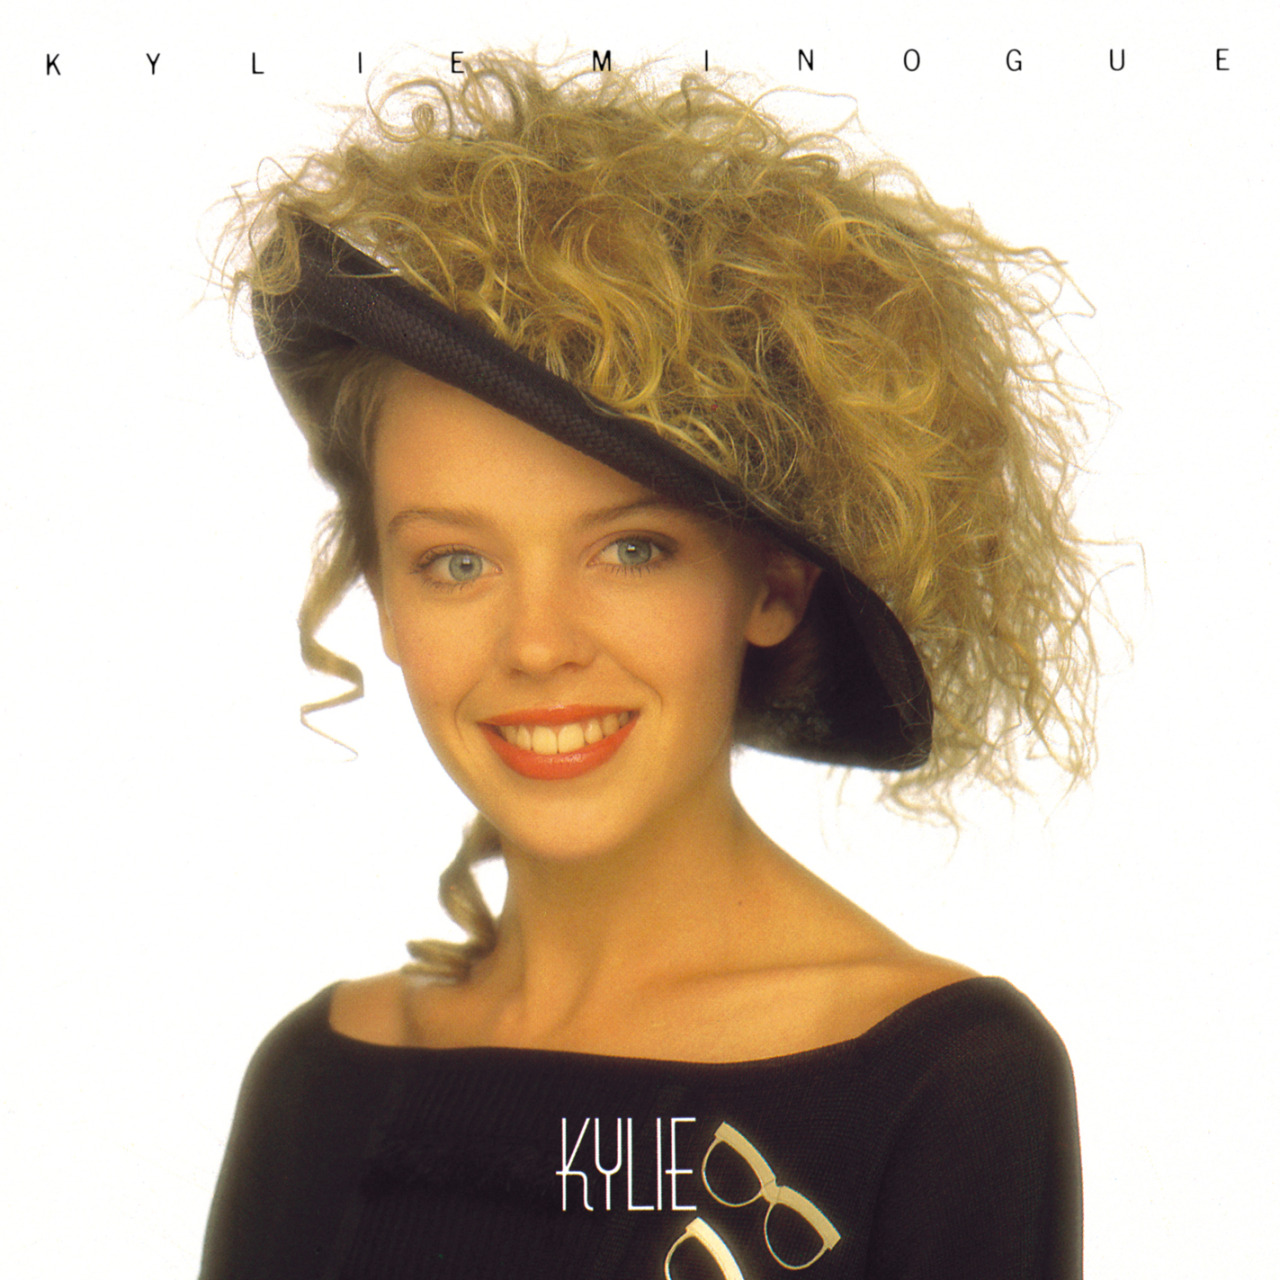 Aussie singer and gay icon Kylie Minogue will be the